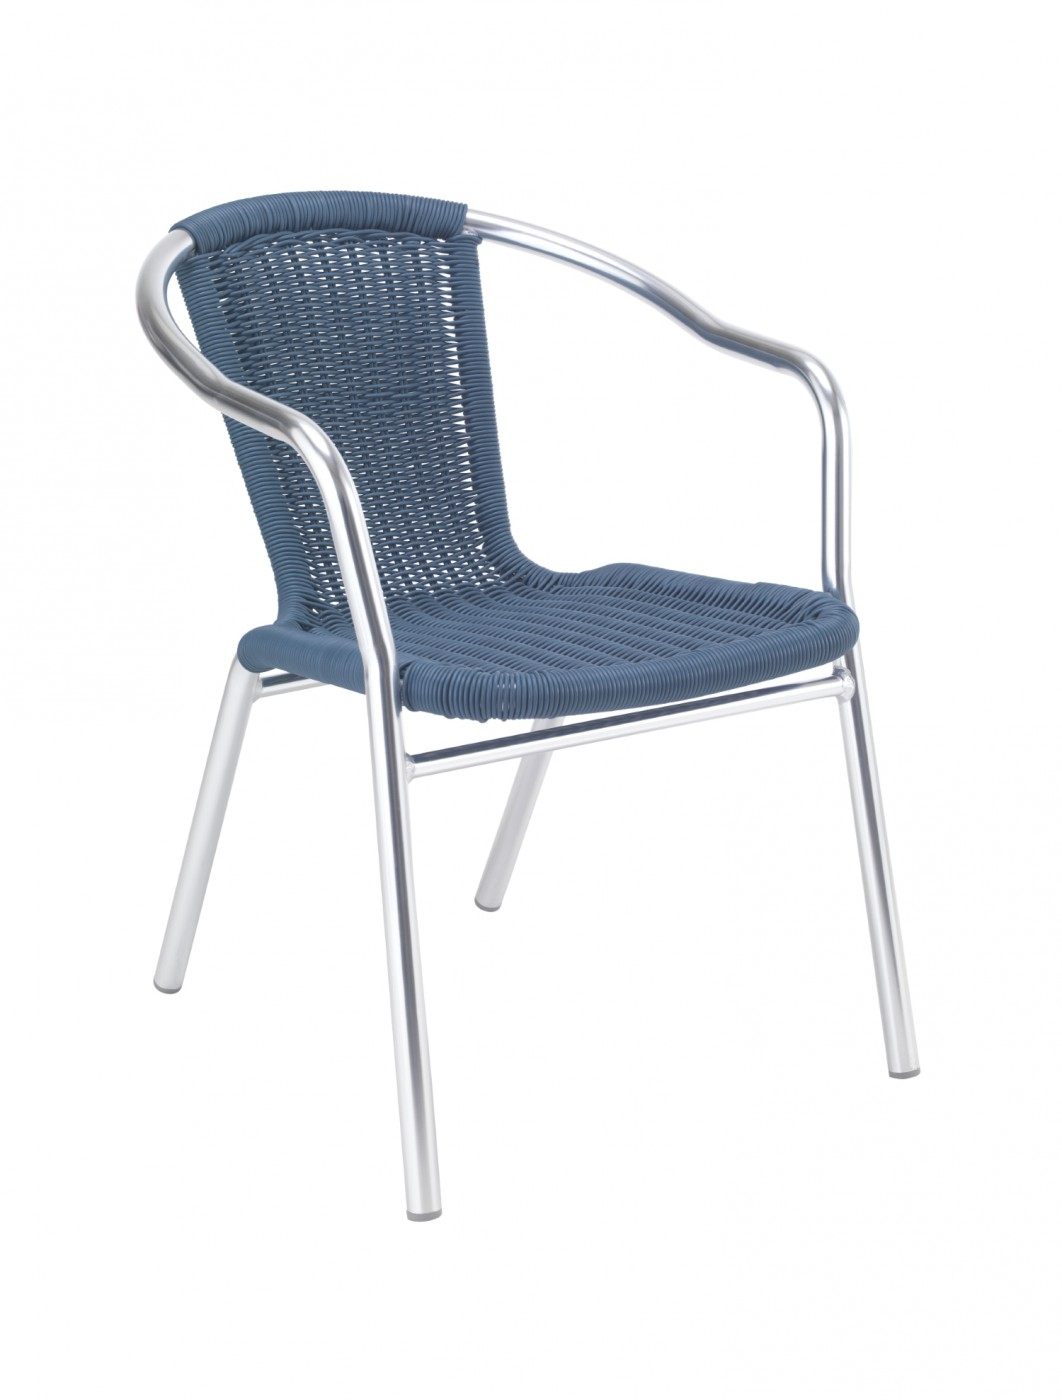 blue bistro chairs kids bedroom tc plaza wicker chair ch0660 121 office furniture or natural enlarged view